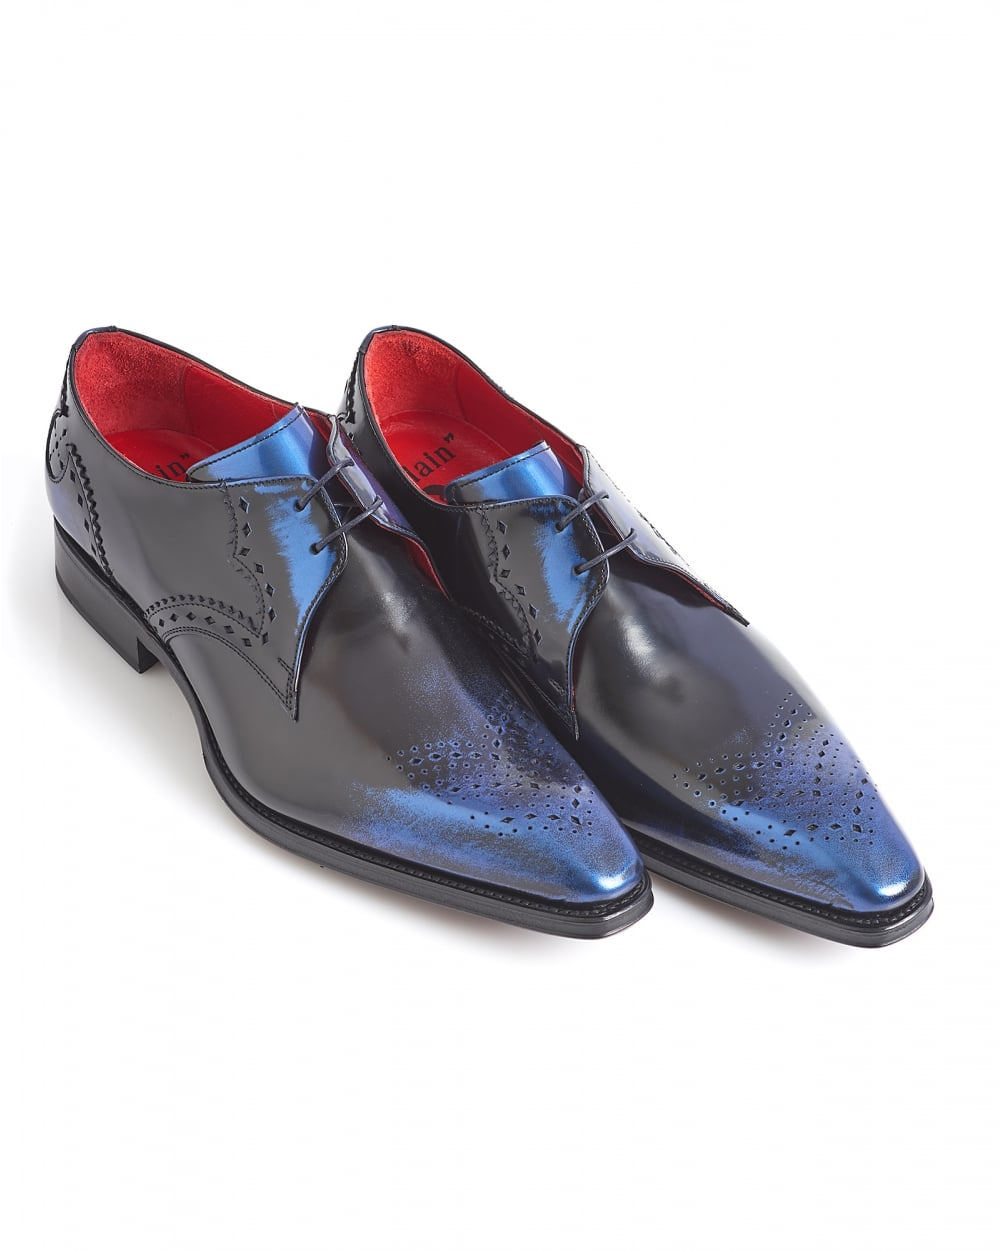 jeffery west shoes mens moon brogues, two hole navy blue shoes PIYNZQT